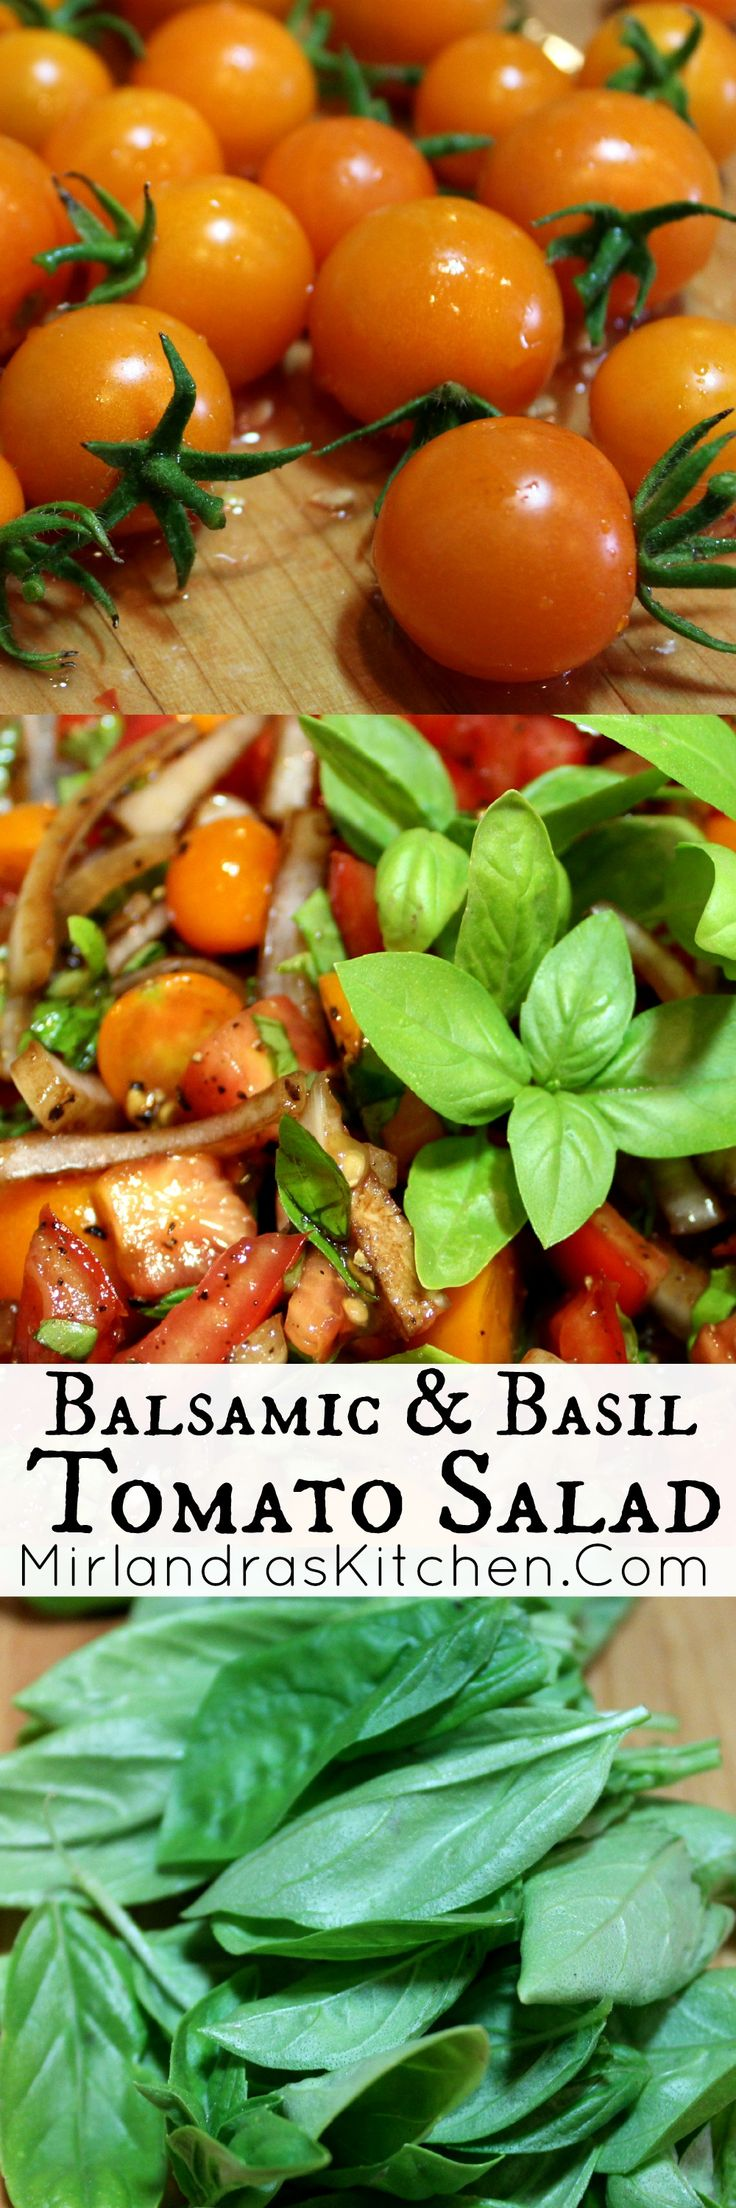 This tomato salad with basil, sweet onions, and reduced balsamic vinegar is easy, healthy, and beautiful. Everybody wants seconds all summer long.  If you have never reduced balsamic before this is the time to learn!  I include all the info on how to turn a giant $10 bottle of vinegar into one that tastes like a $100 bottle!  Also, my recommendation for a cherry tomato plant to grow this summer.